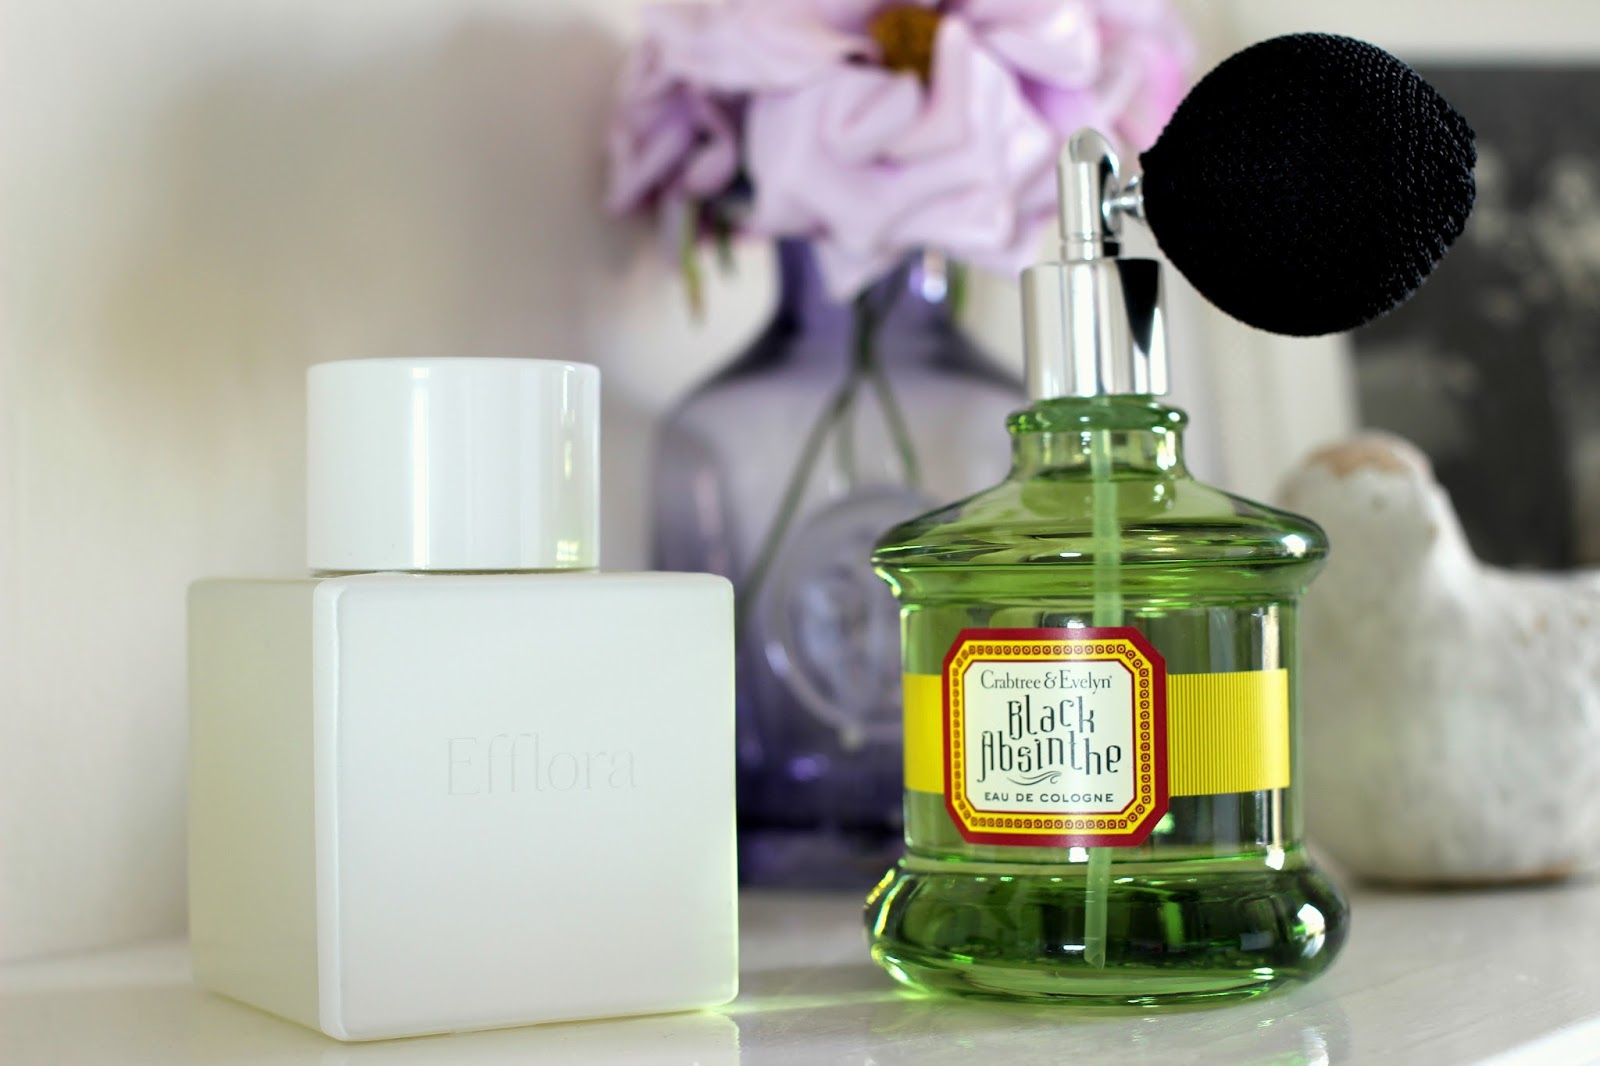 Black Absinthe Eau de Cologne Review